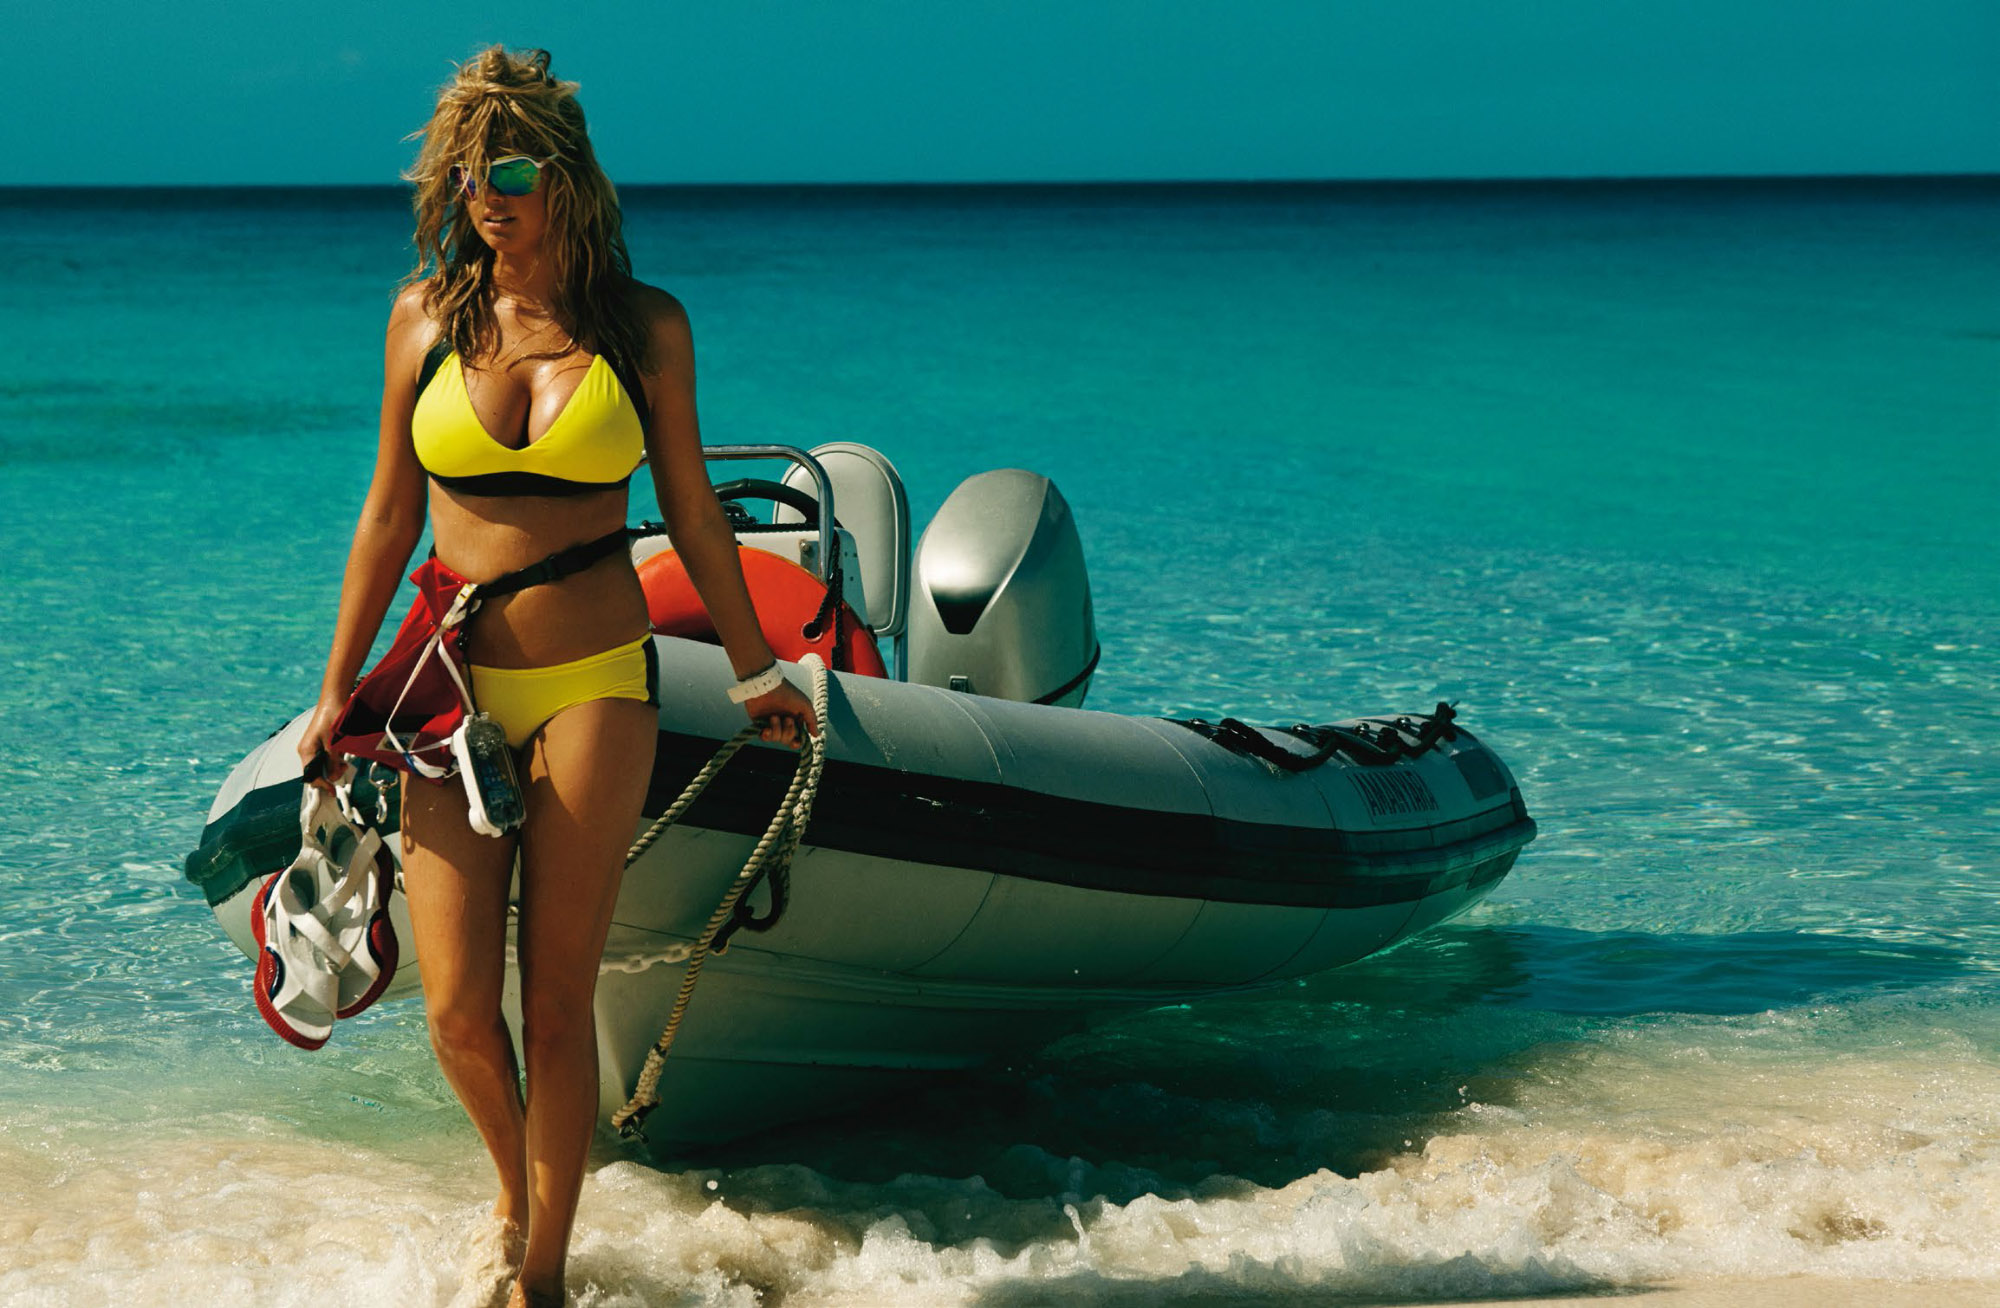 kate-upton-by-mario-testino-for-uk-vogue-june-2014-4